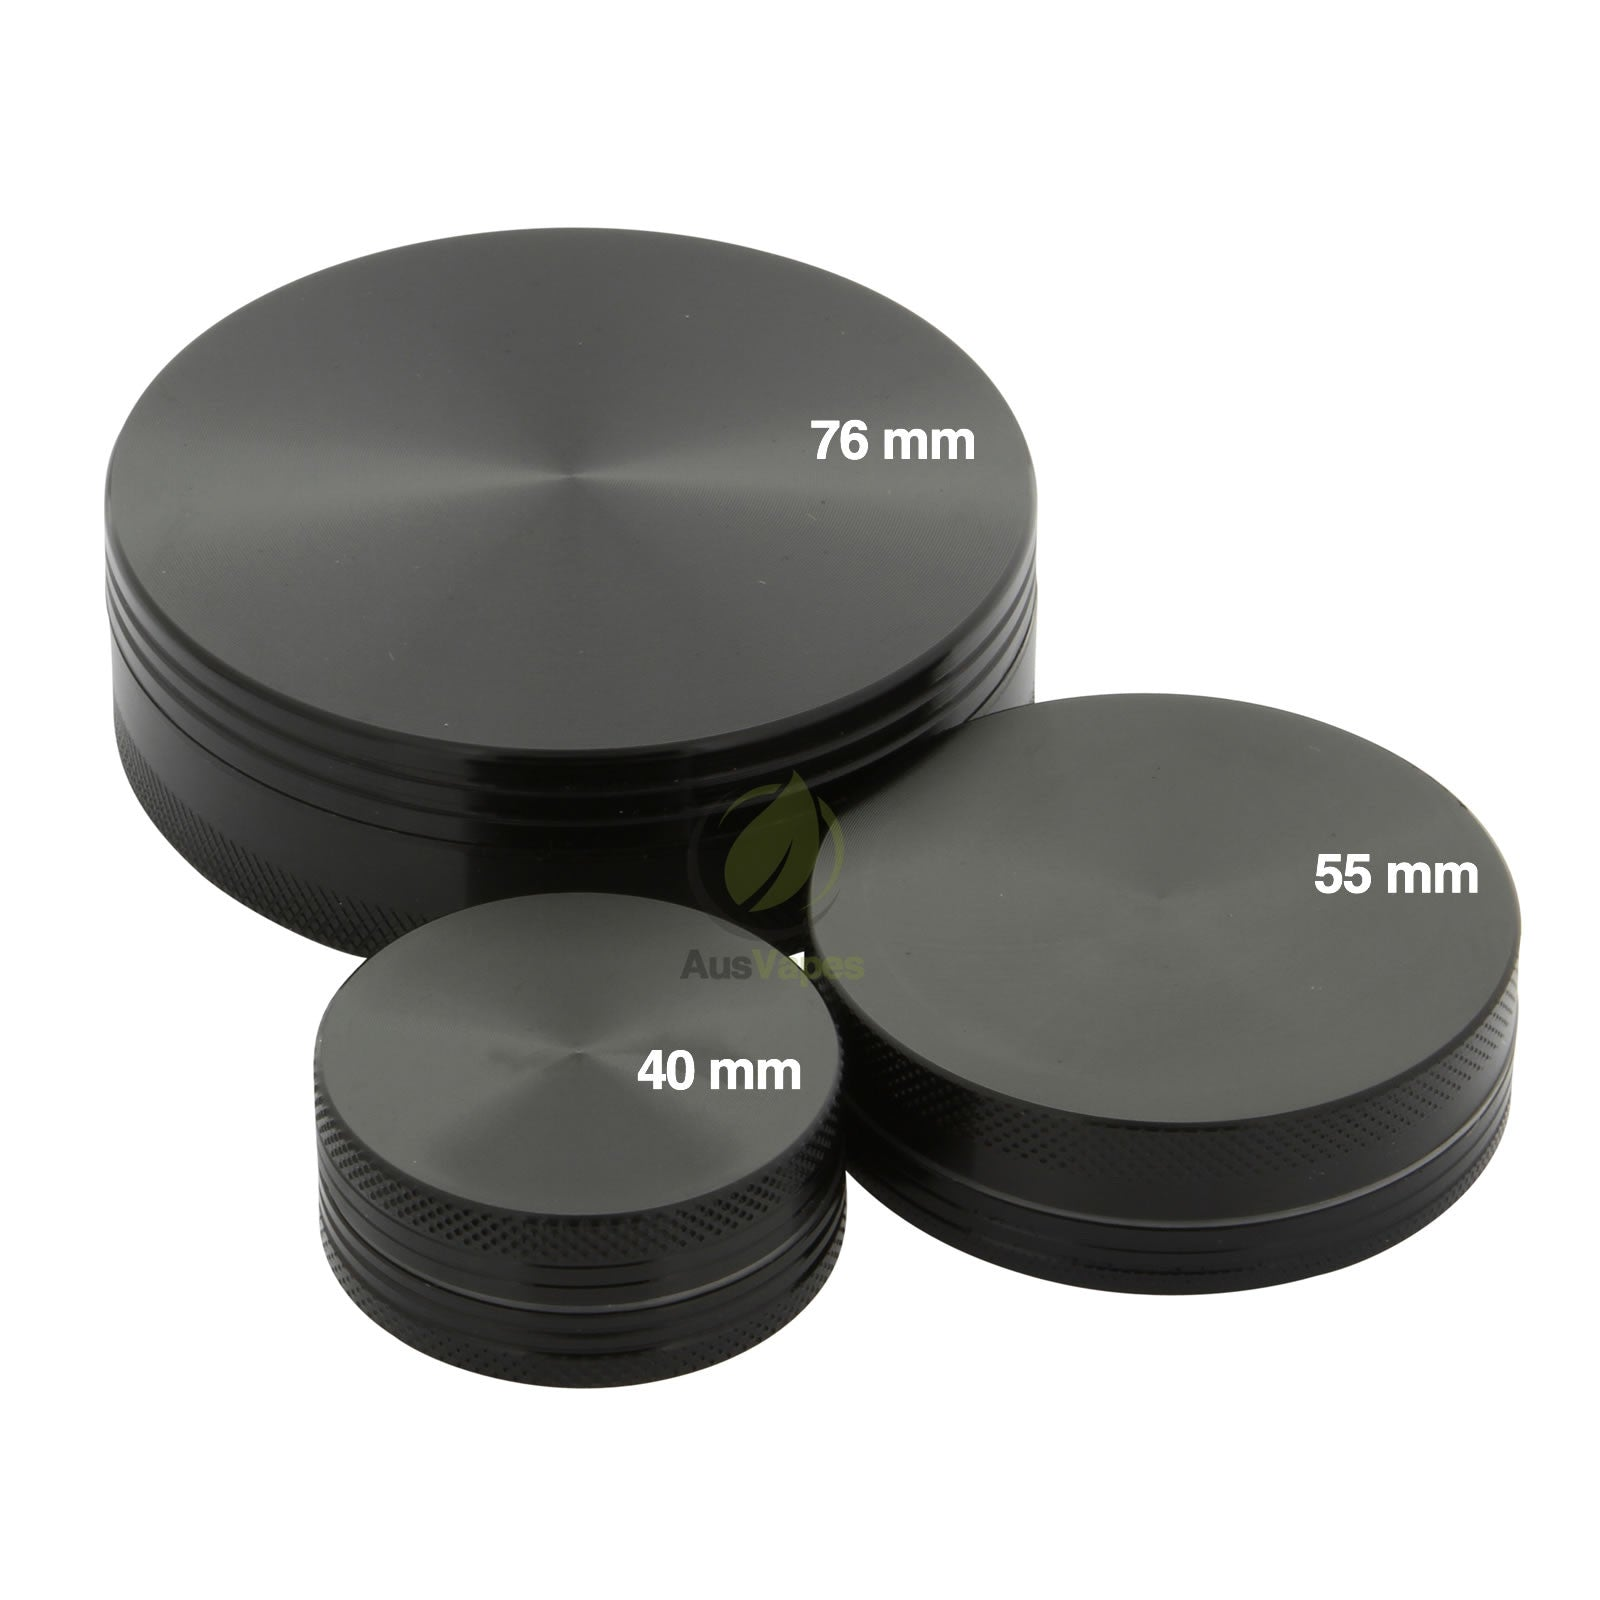 Black Aluminium Grinder 55mm - 2 pc.